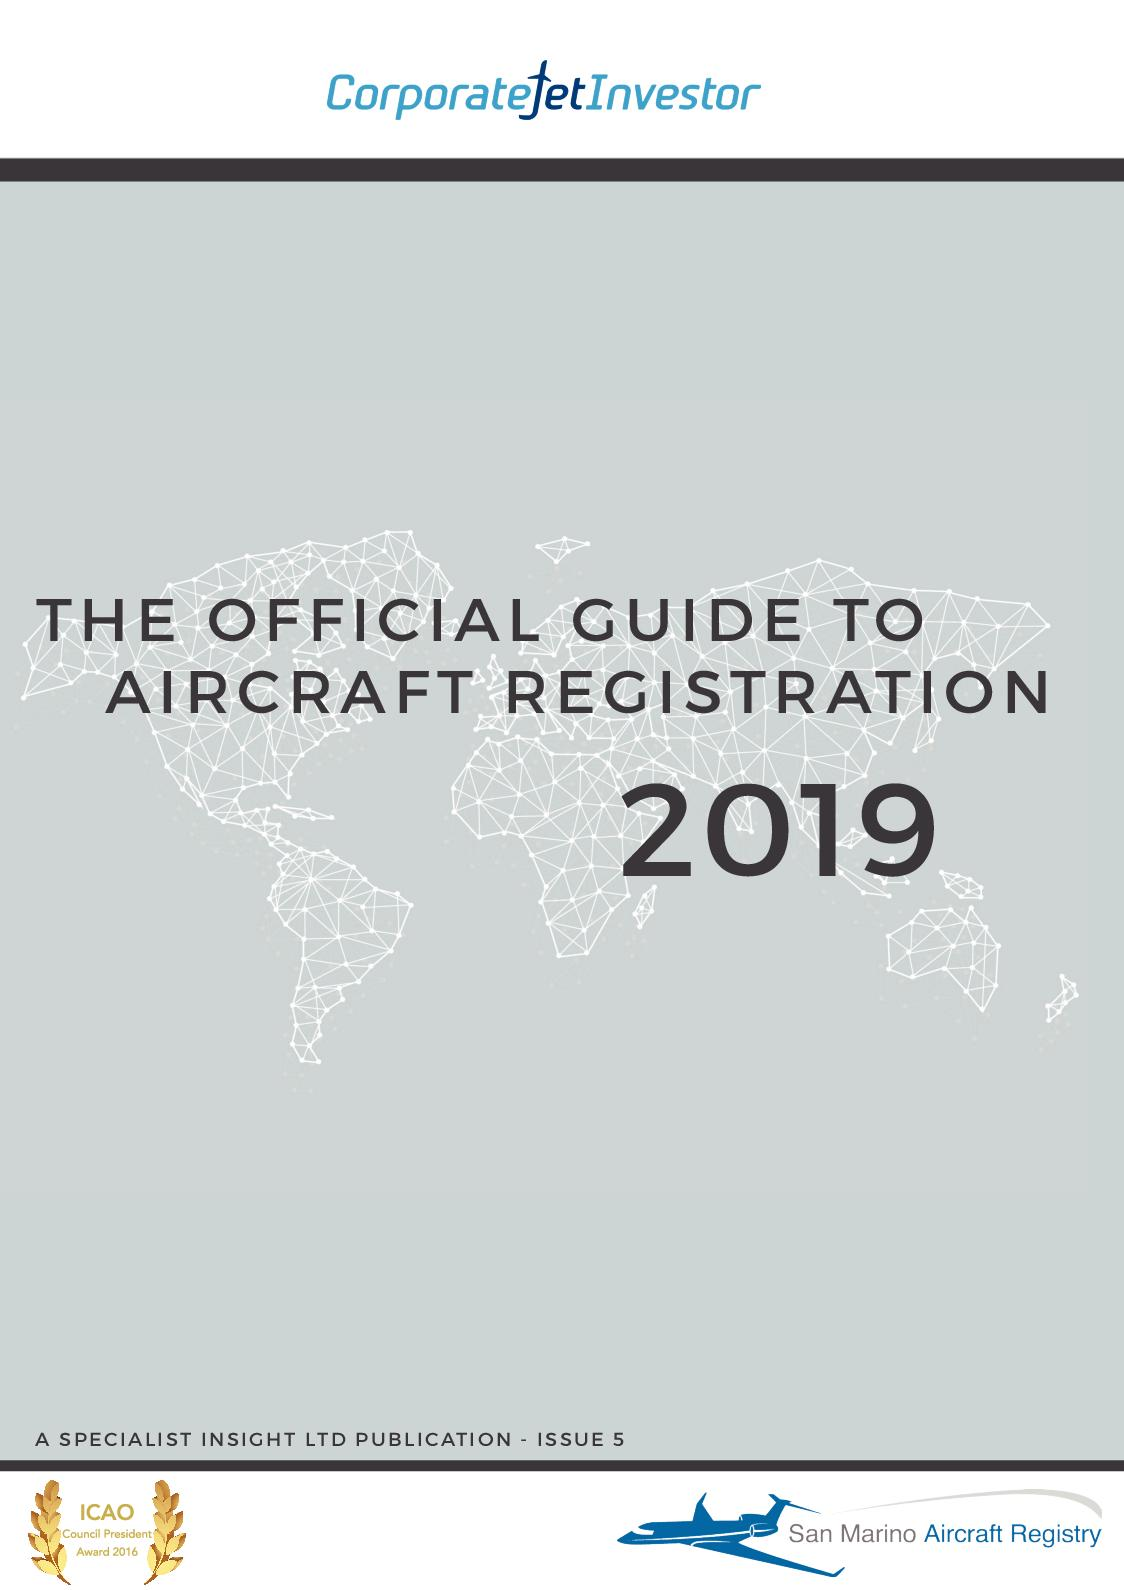 Calaméo - The Official Guide to Aircraft Registration and